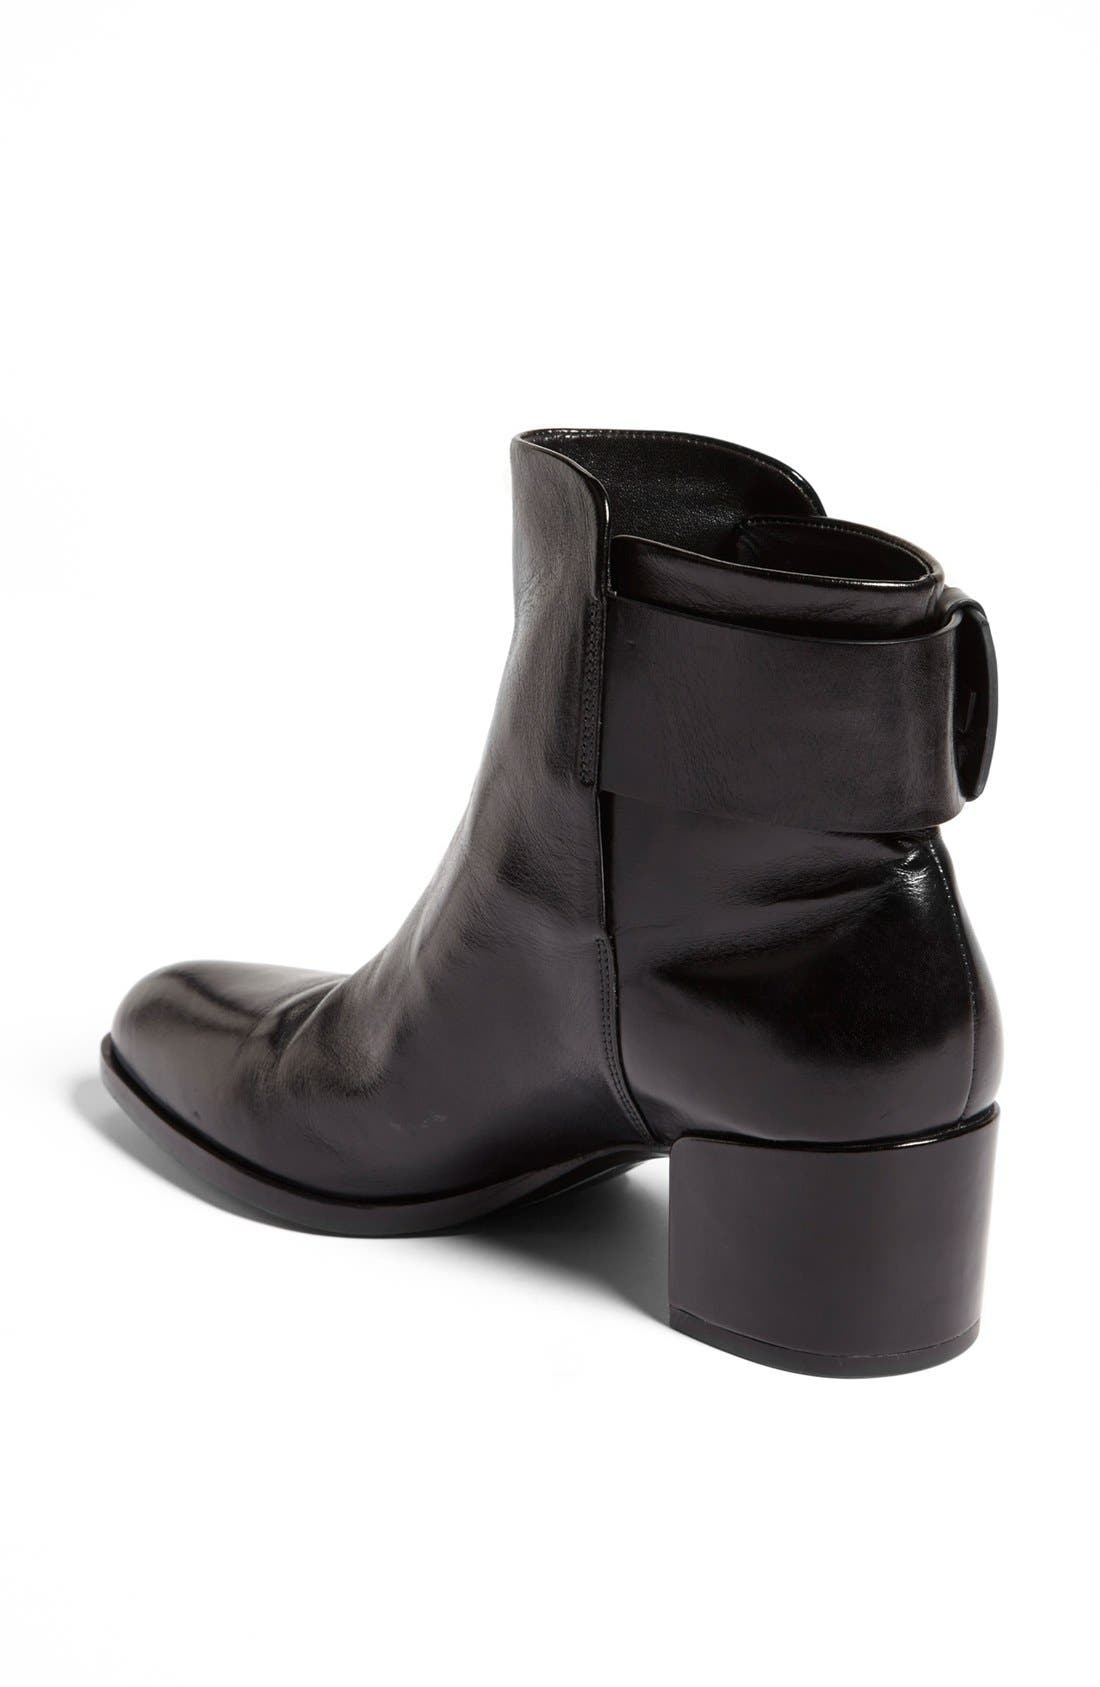 Alternate Image 2  - Alexander Wang 'Anja' Calfskin Leather Ankle Boot